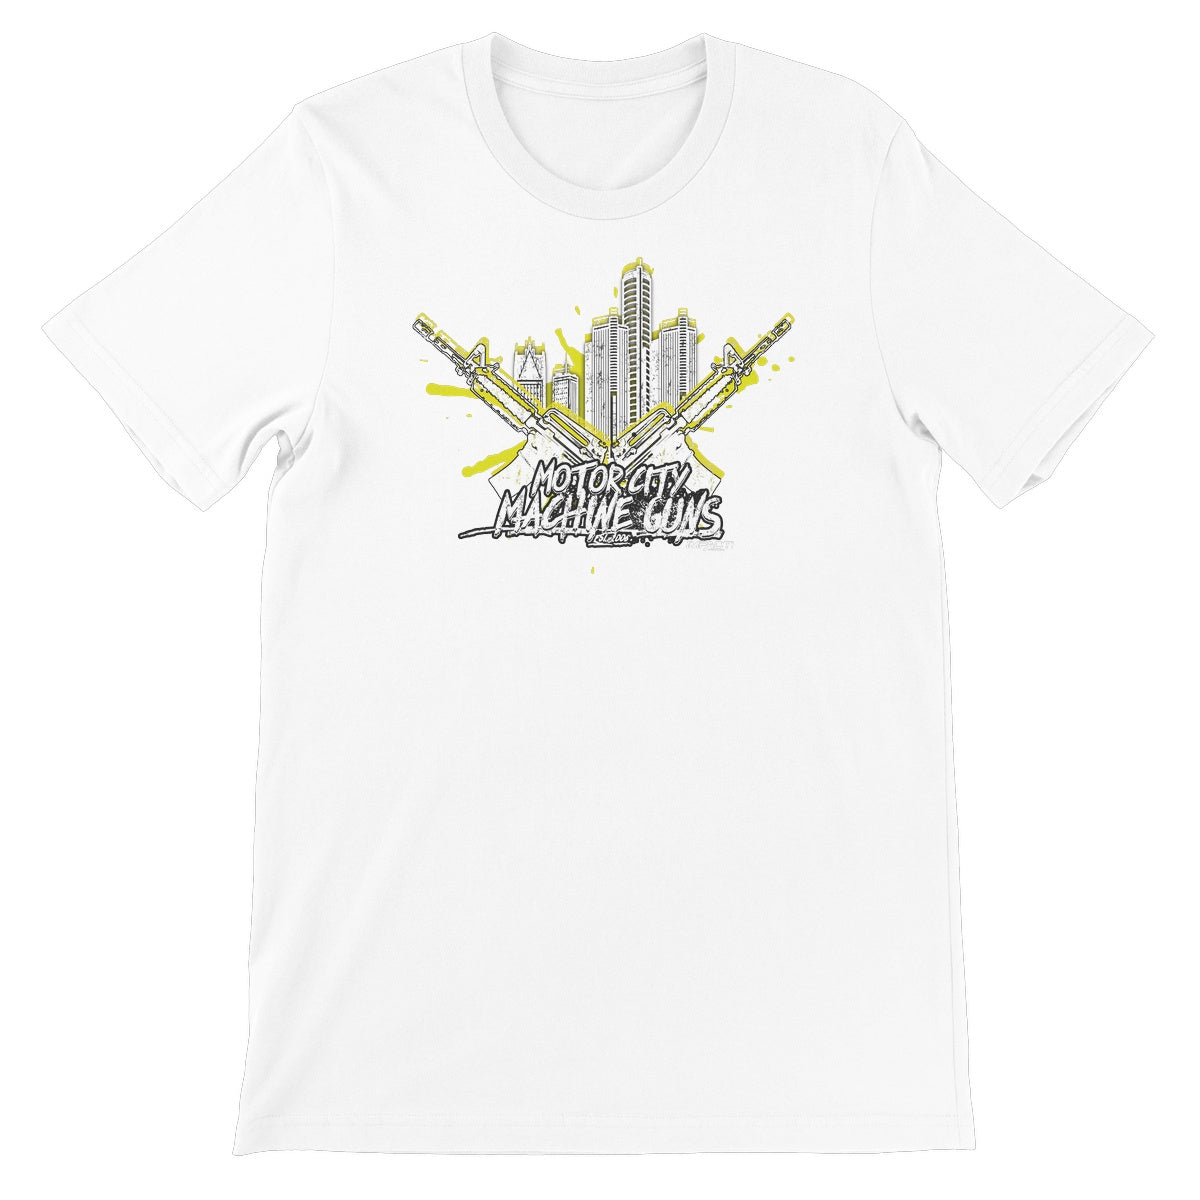 Motor City Machine Guns - Detroit City Heat Unisex Short Sleeve T-Shirt